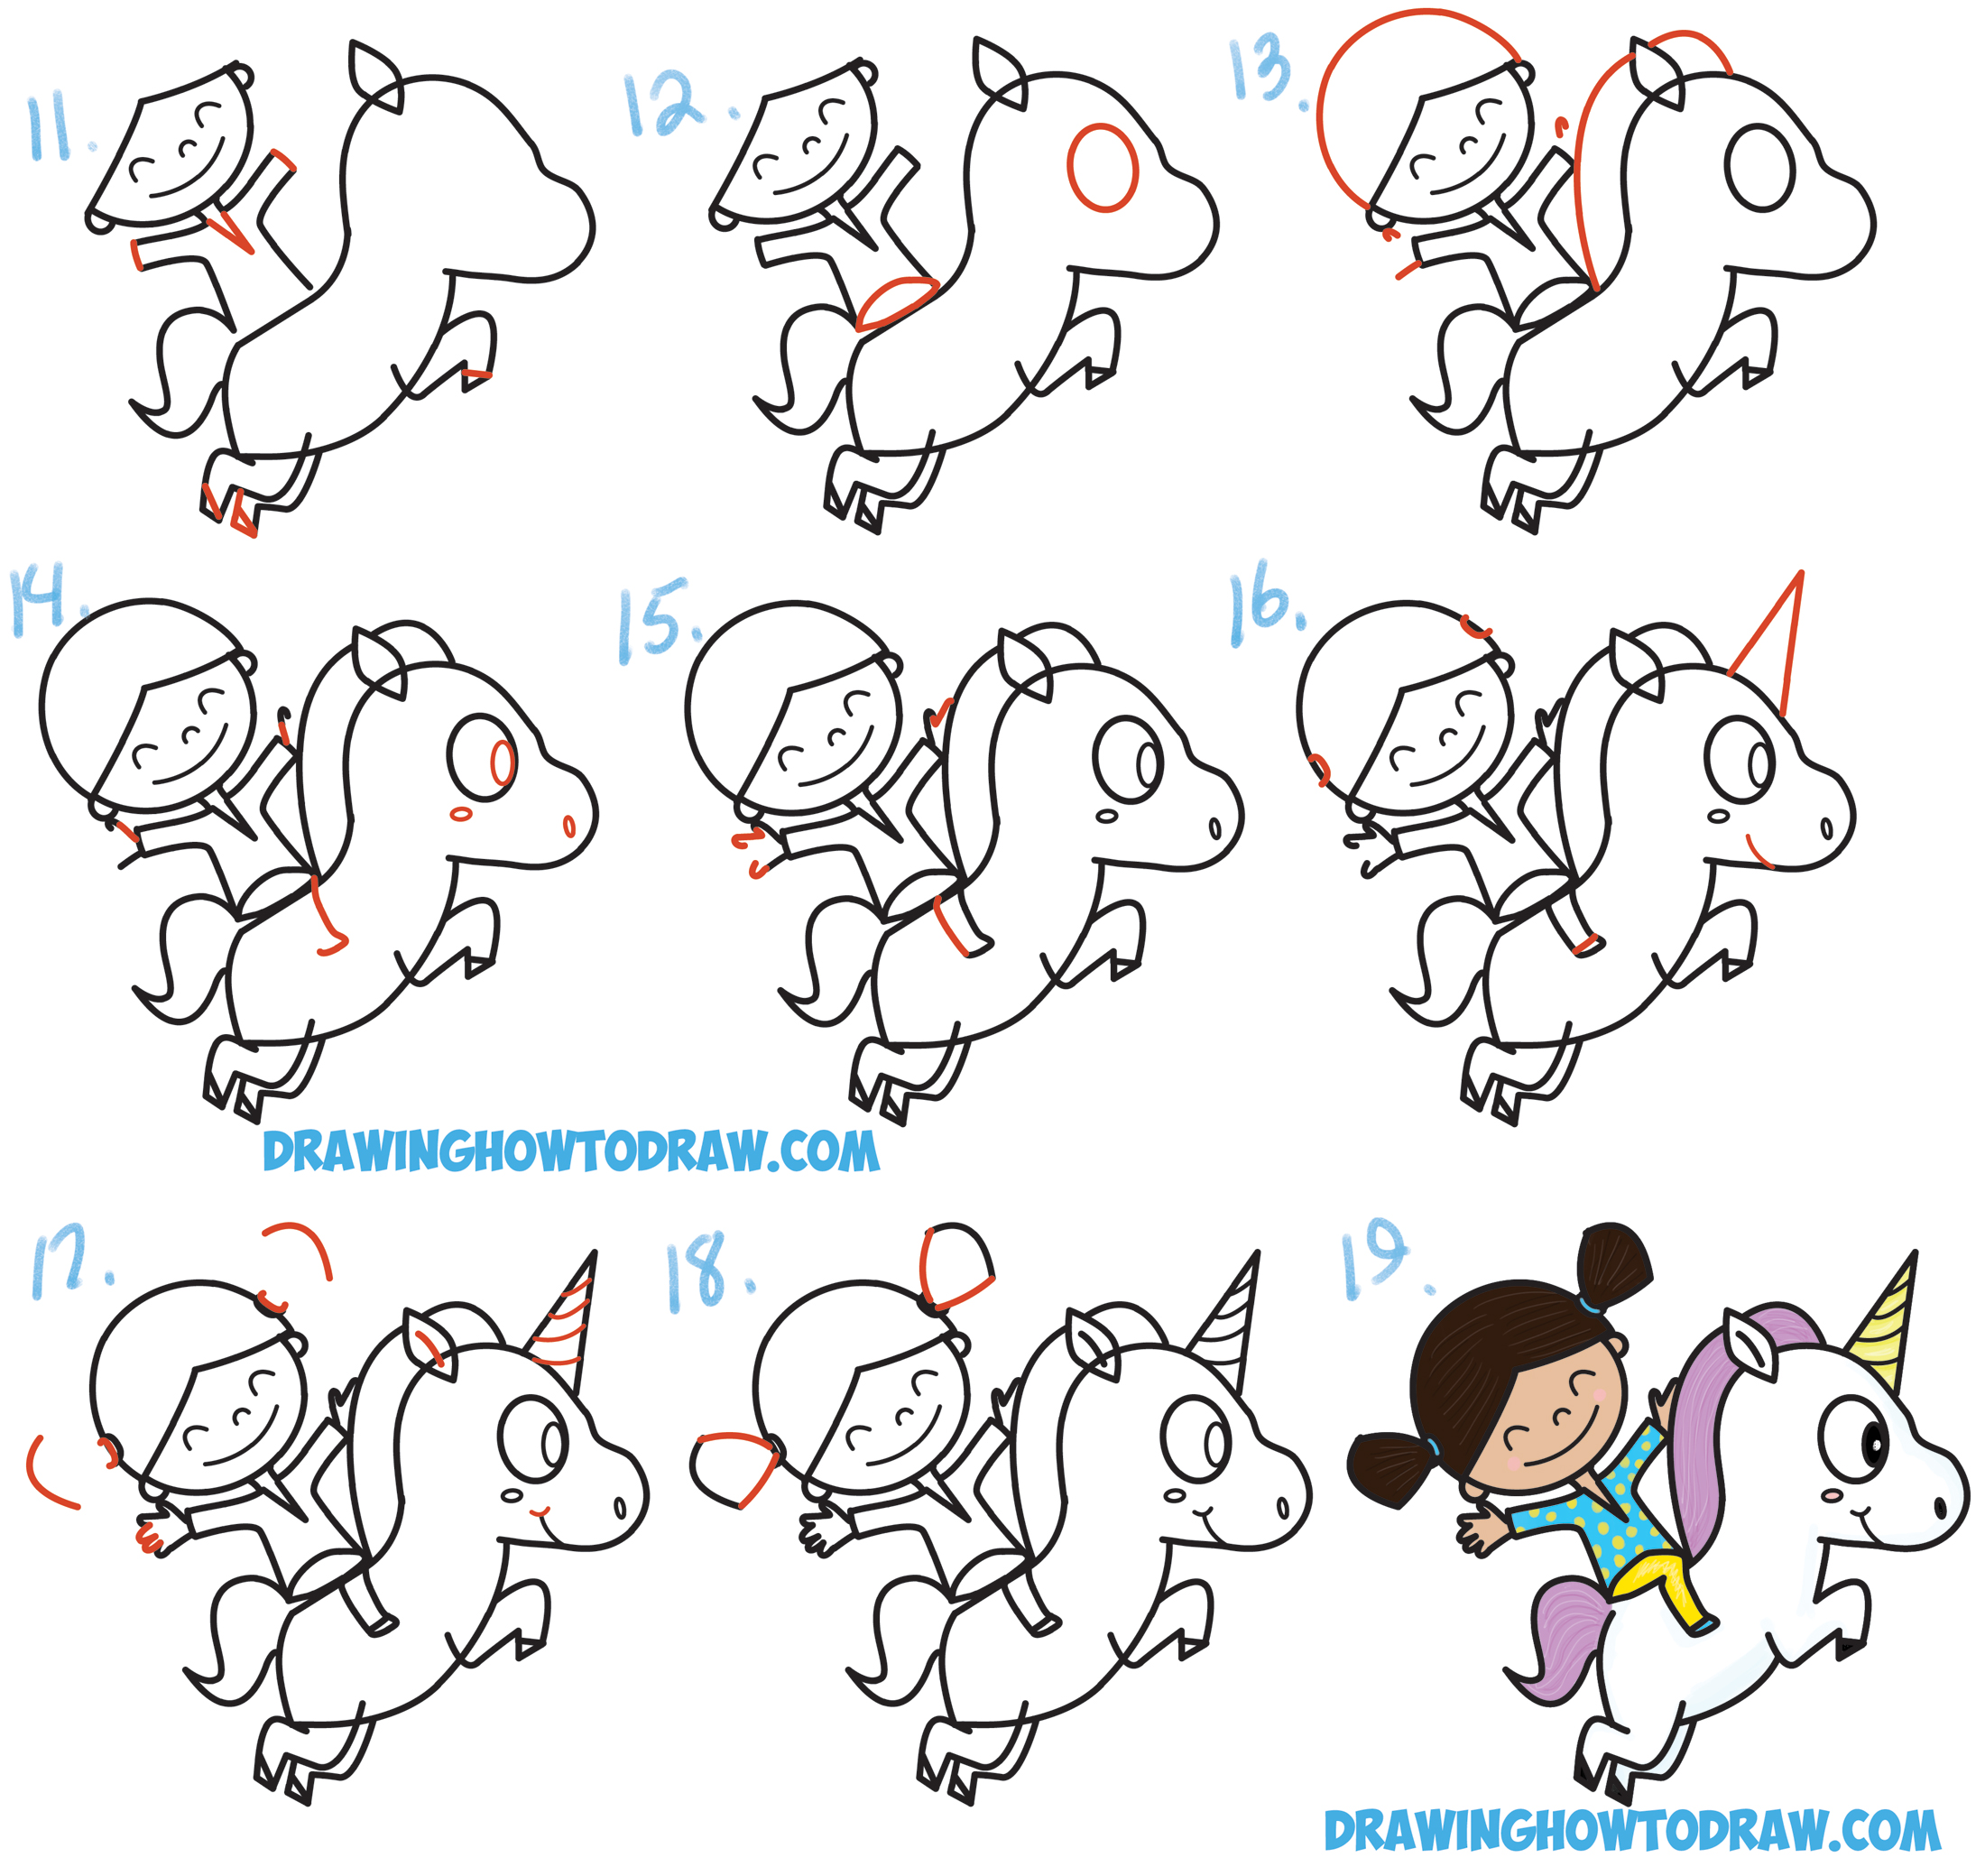 Learn How to Draw a Cute Kawaii / Chibi Girl Riding a Unicorn in Simple Steps Drawing Lesson for Children